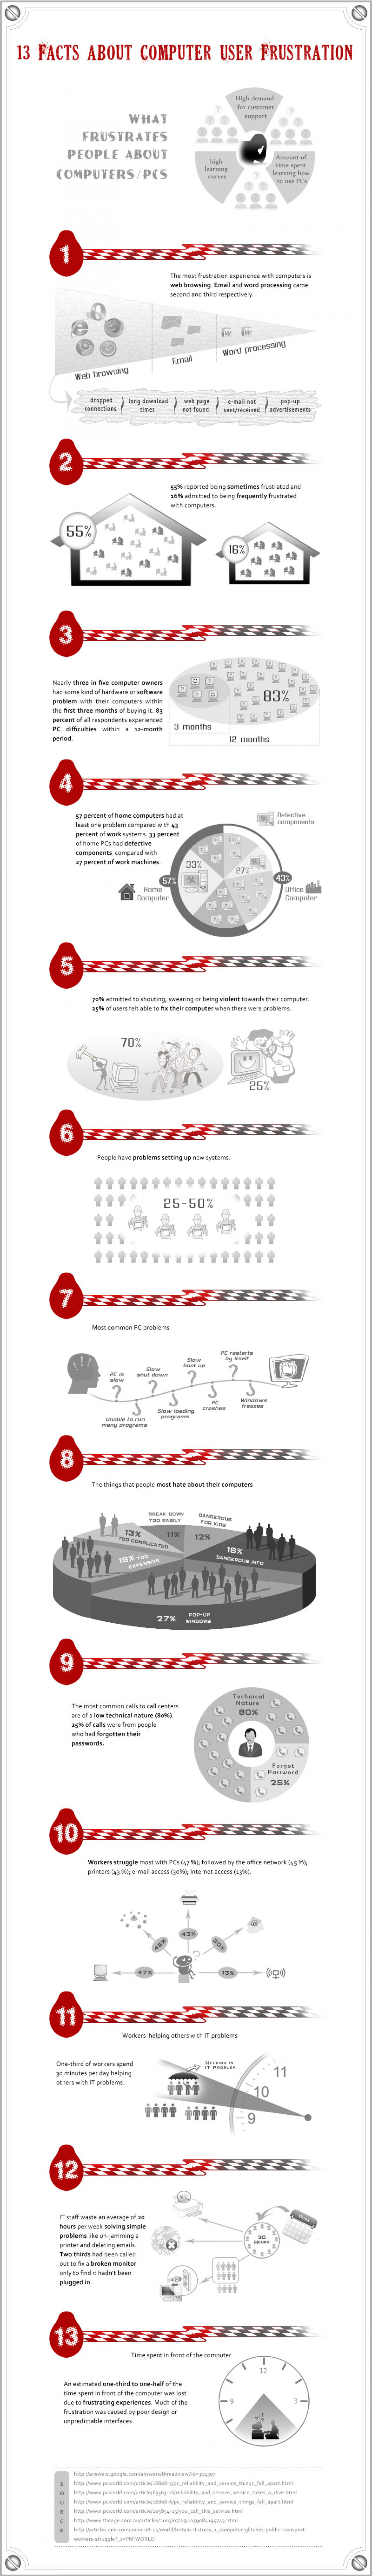 13 facts about computer user's frustation  Infographic